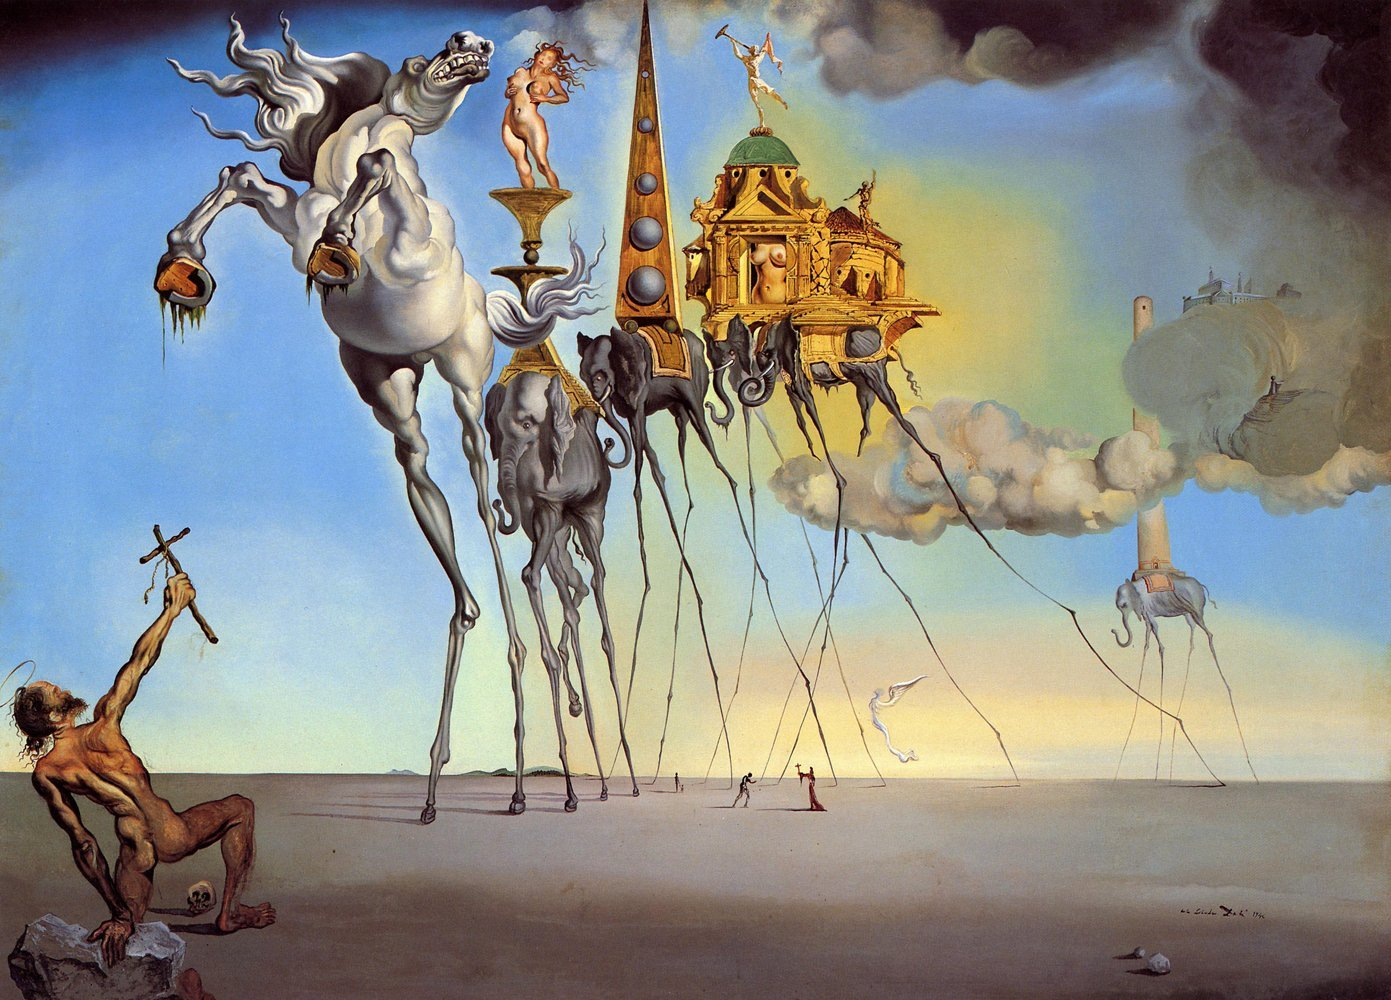 Amazon com salvador dali the temptation of st anthony size 24x36 inch gallery wrapped canvas art print wall décor posters prints